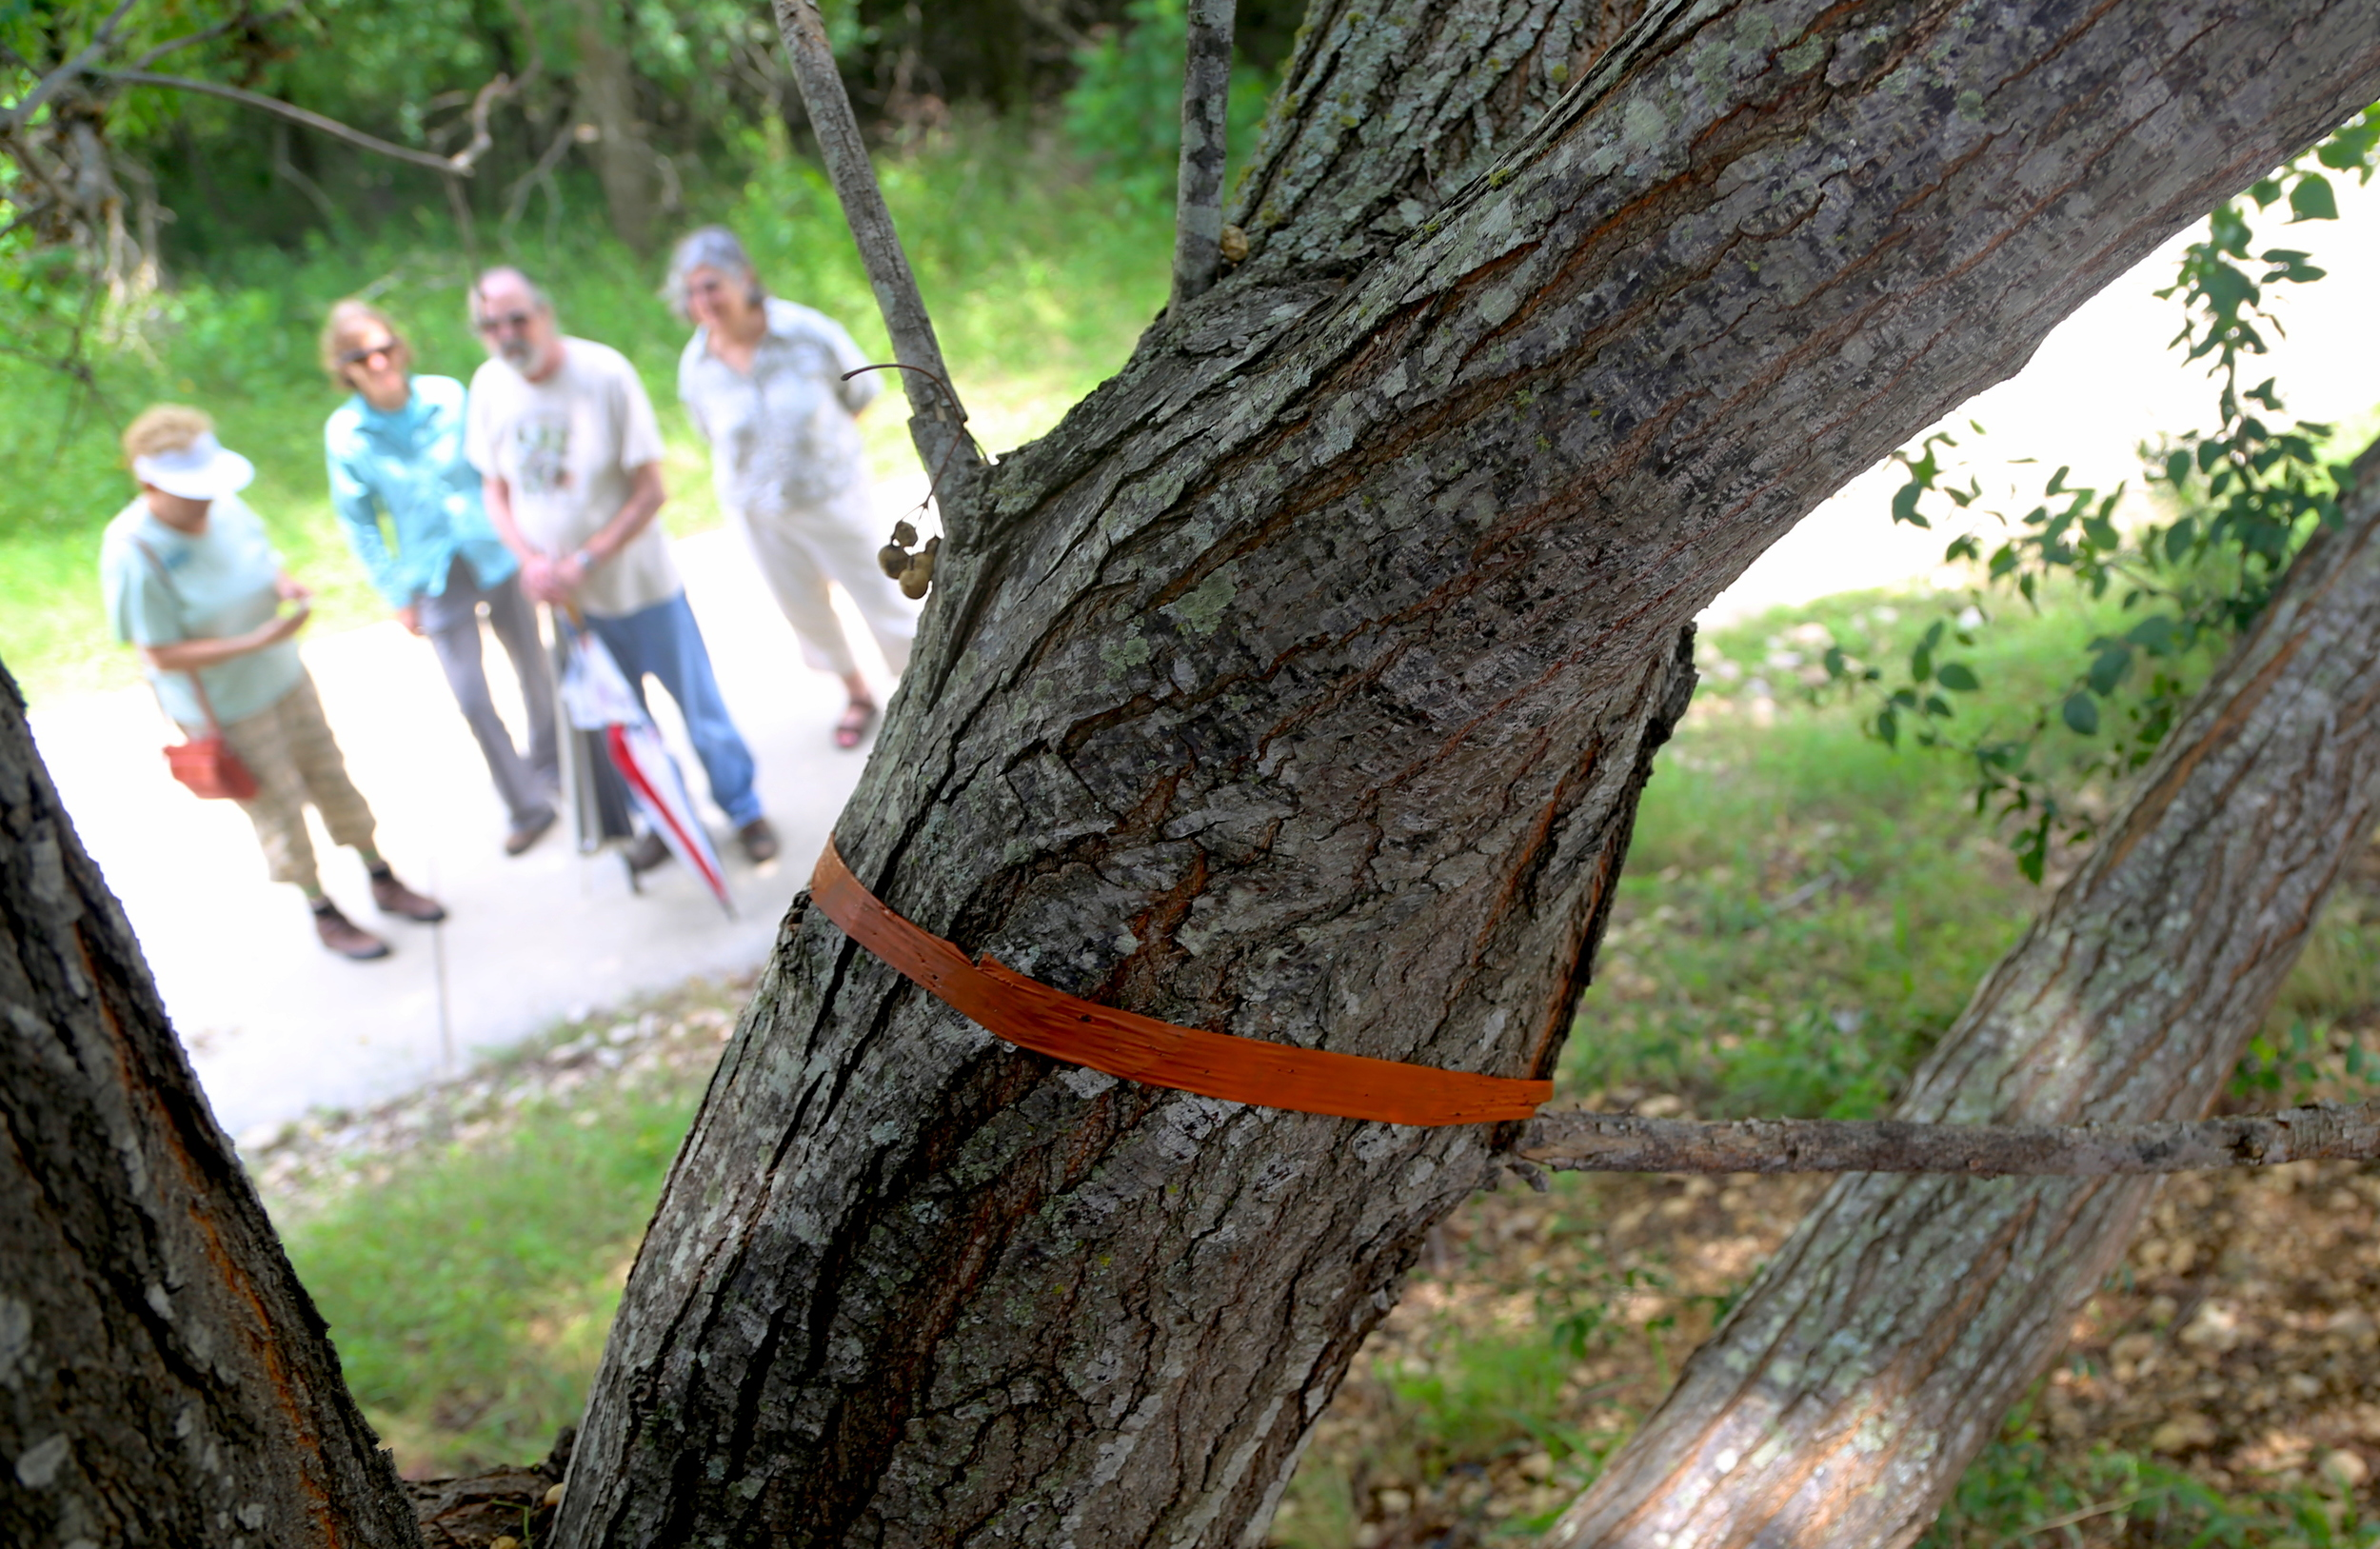 The government sometimes restricts where he Balcones Invaders can remove invasives. The removal group marked this invasive tree for removal months ago, but the government still hasn't acted. Meanwhile, the tree continues to spread its seeds.